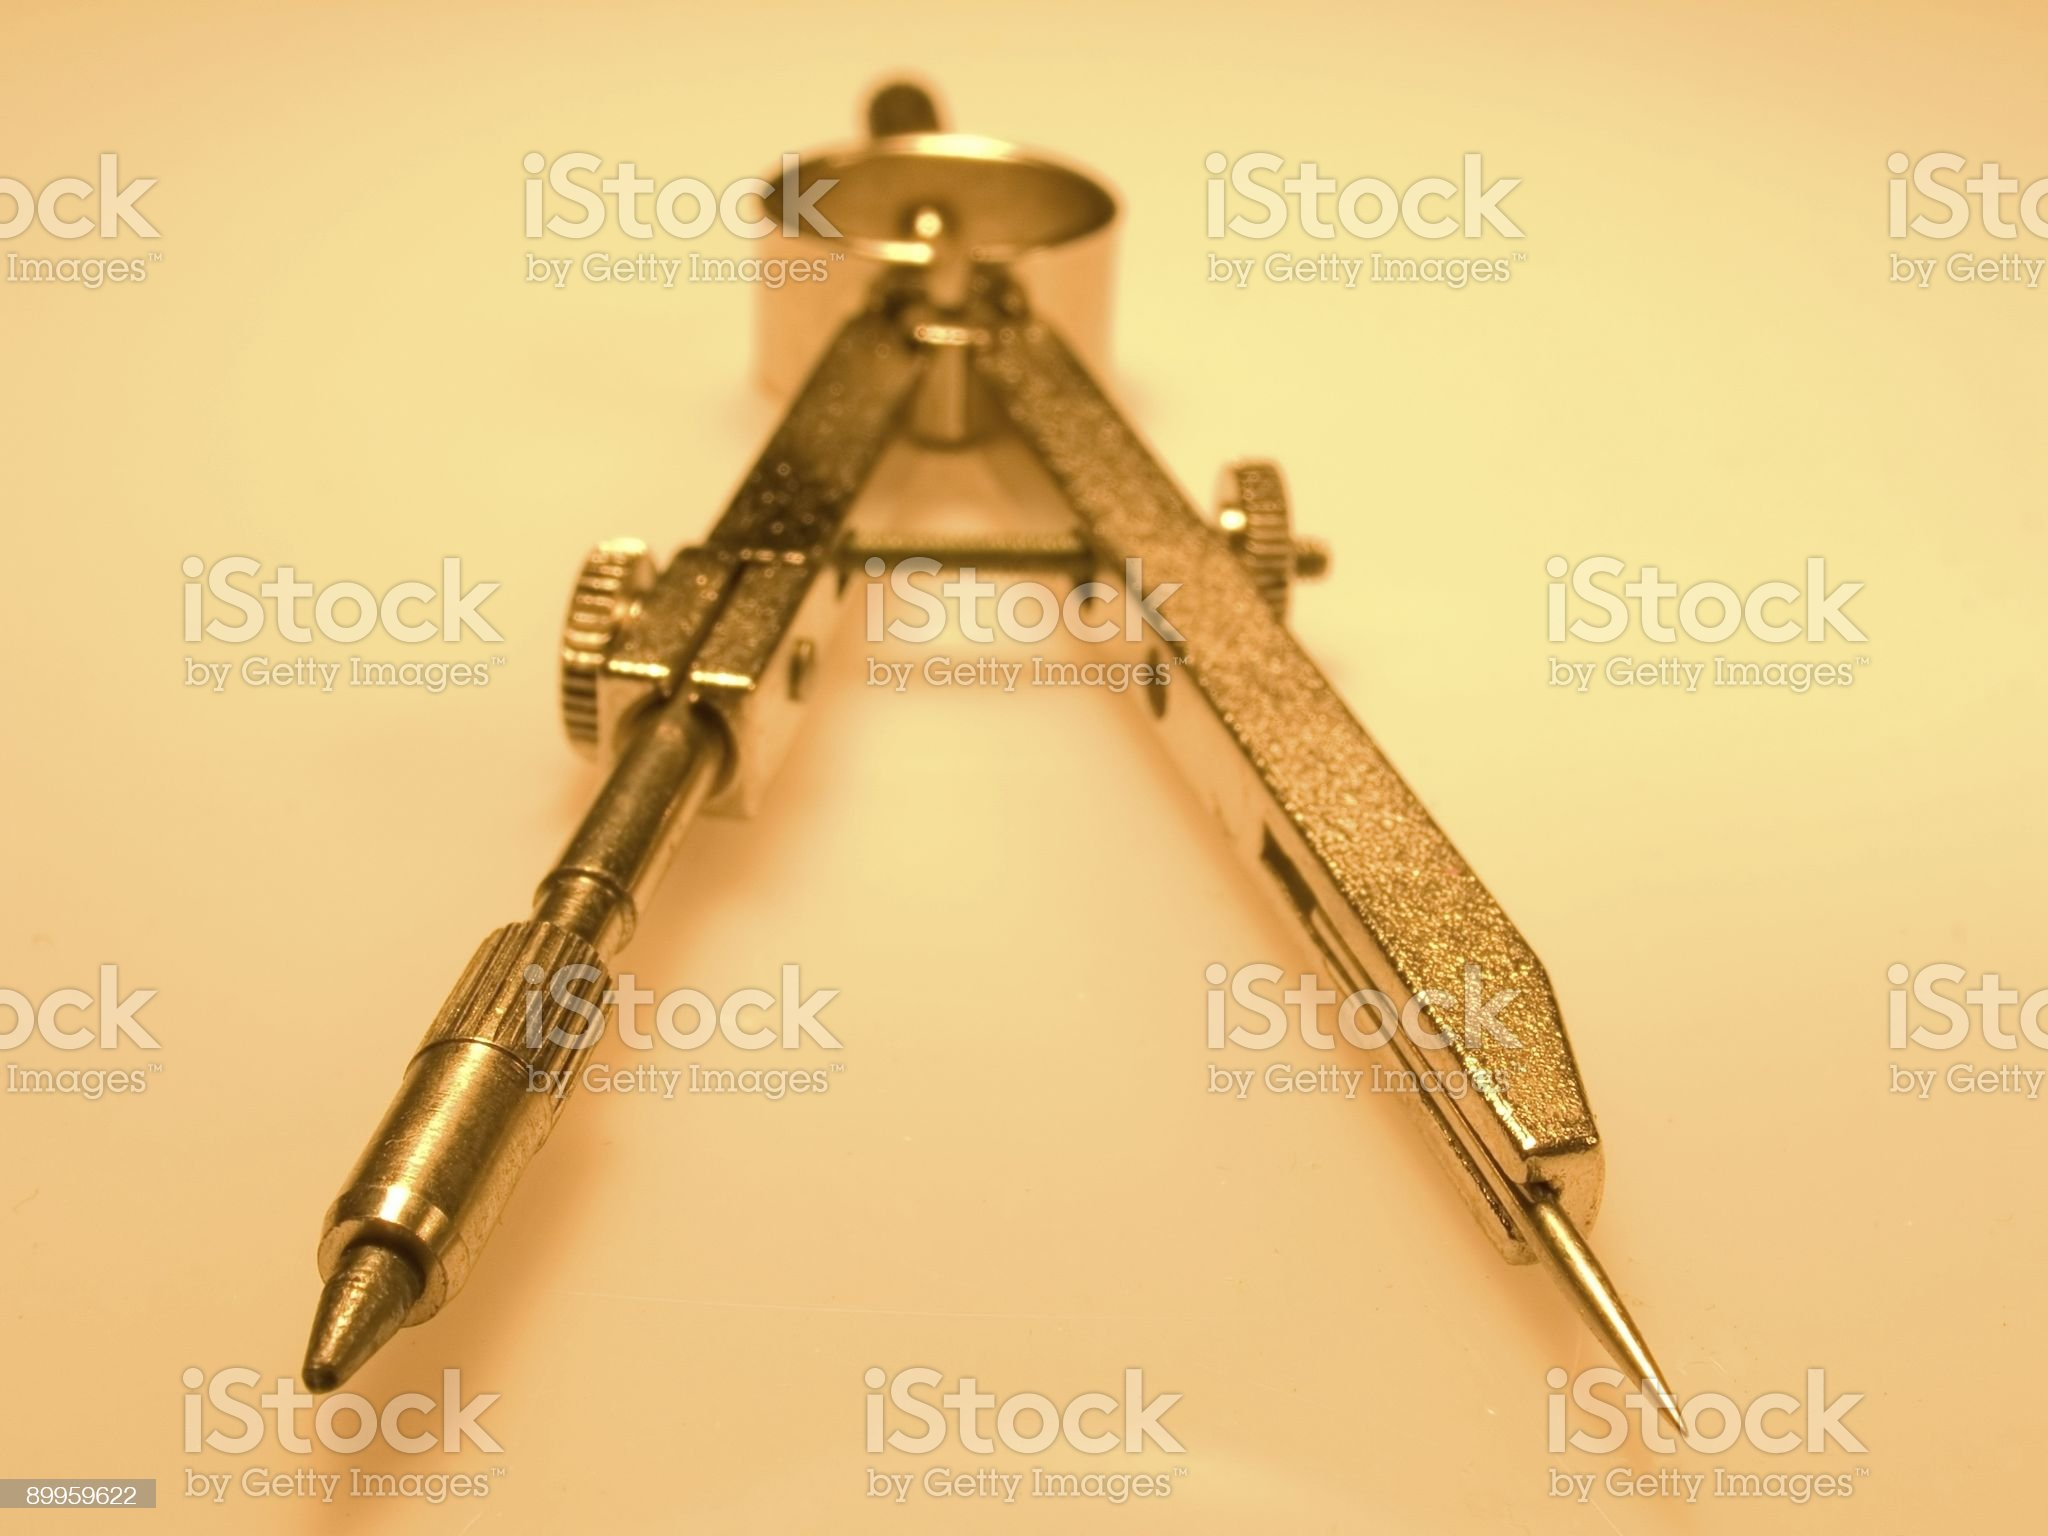 Compasses close-up. royalty-free stock photo